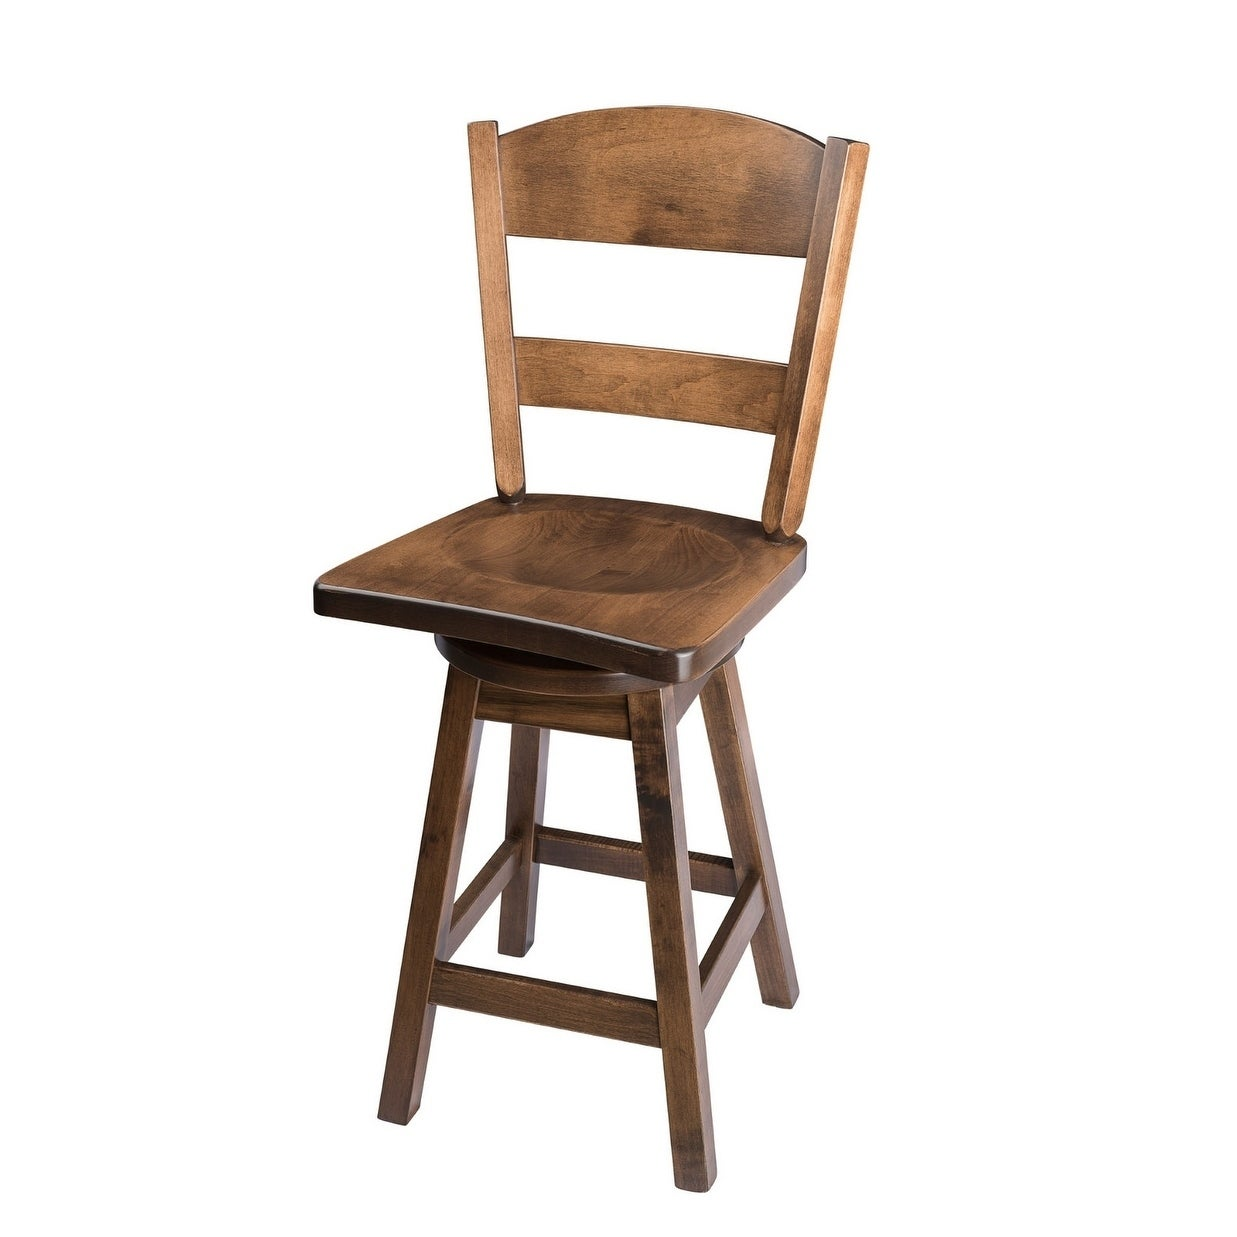 Remarkable Swivel Bar Stool With Classic Back In Maple Wood Pdpeps Interior Chair Design Pdpepsorg